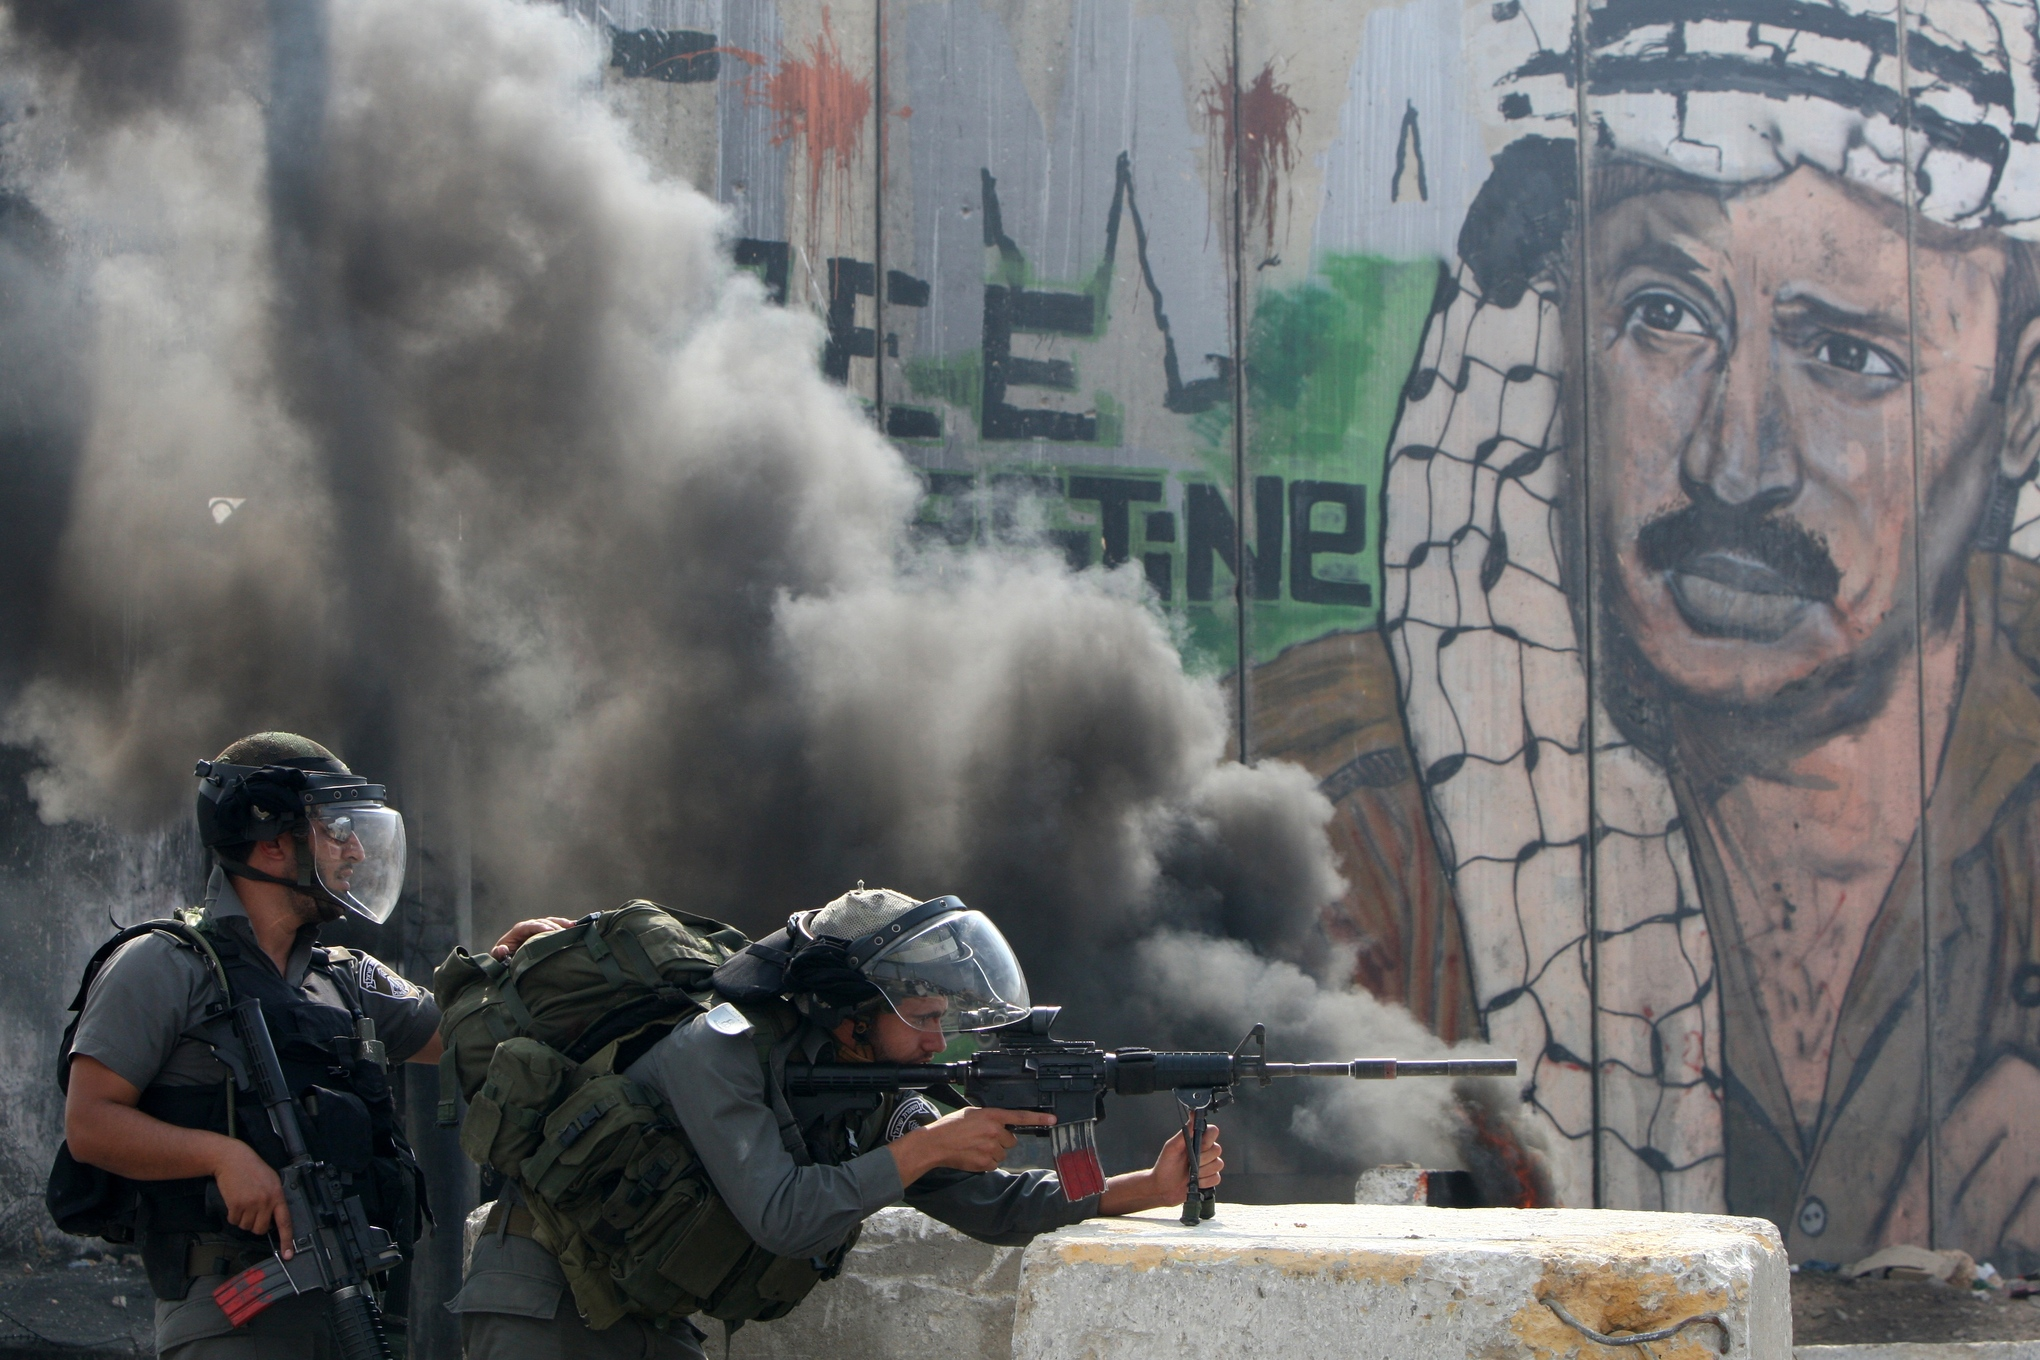 Israeli soldiers keep their position during clashes with Palestinian stone throwers at the Qalandia checkpoint between the West Bank city of Ramallah and Jerusalem on September 21, 2011. AFP PHOTO/AHMAD GHARABLI (Photo credit should read AHMAD GHARABLI/AFP/Getty Images)